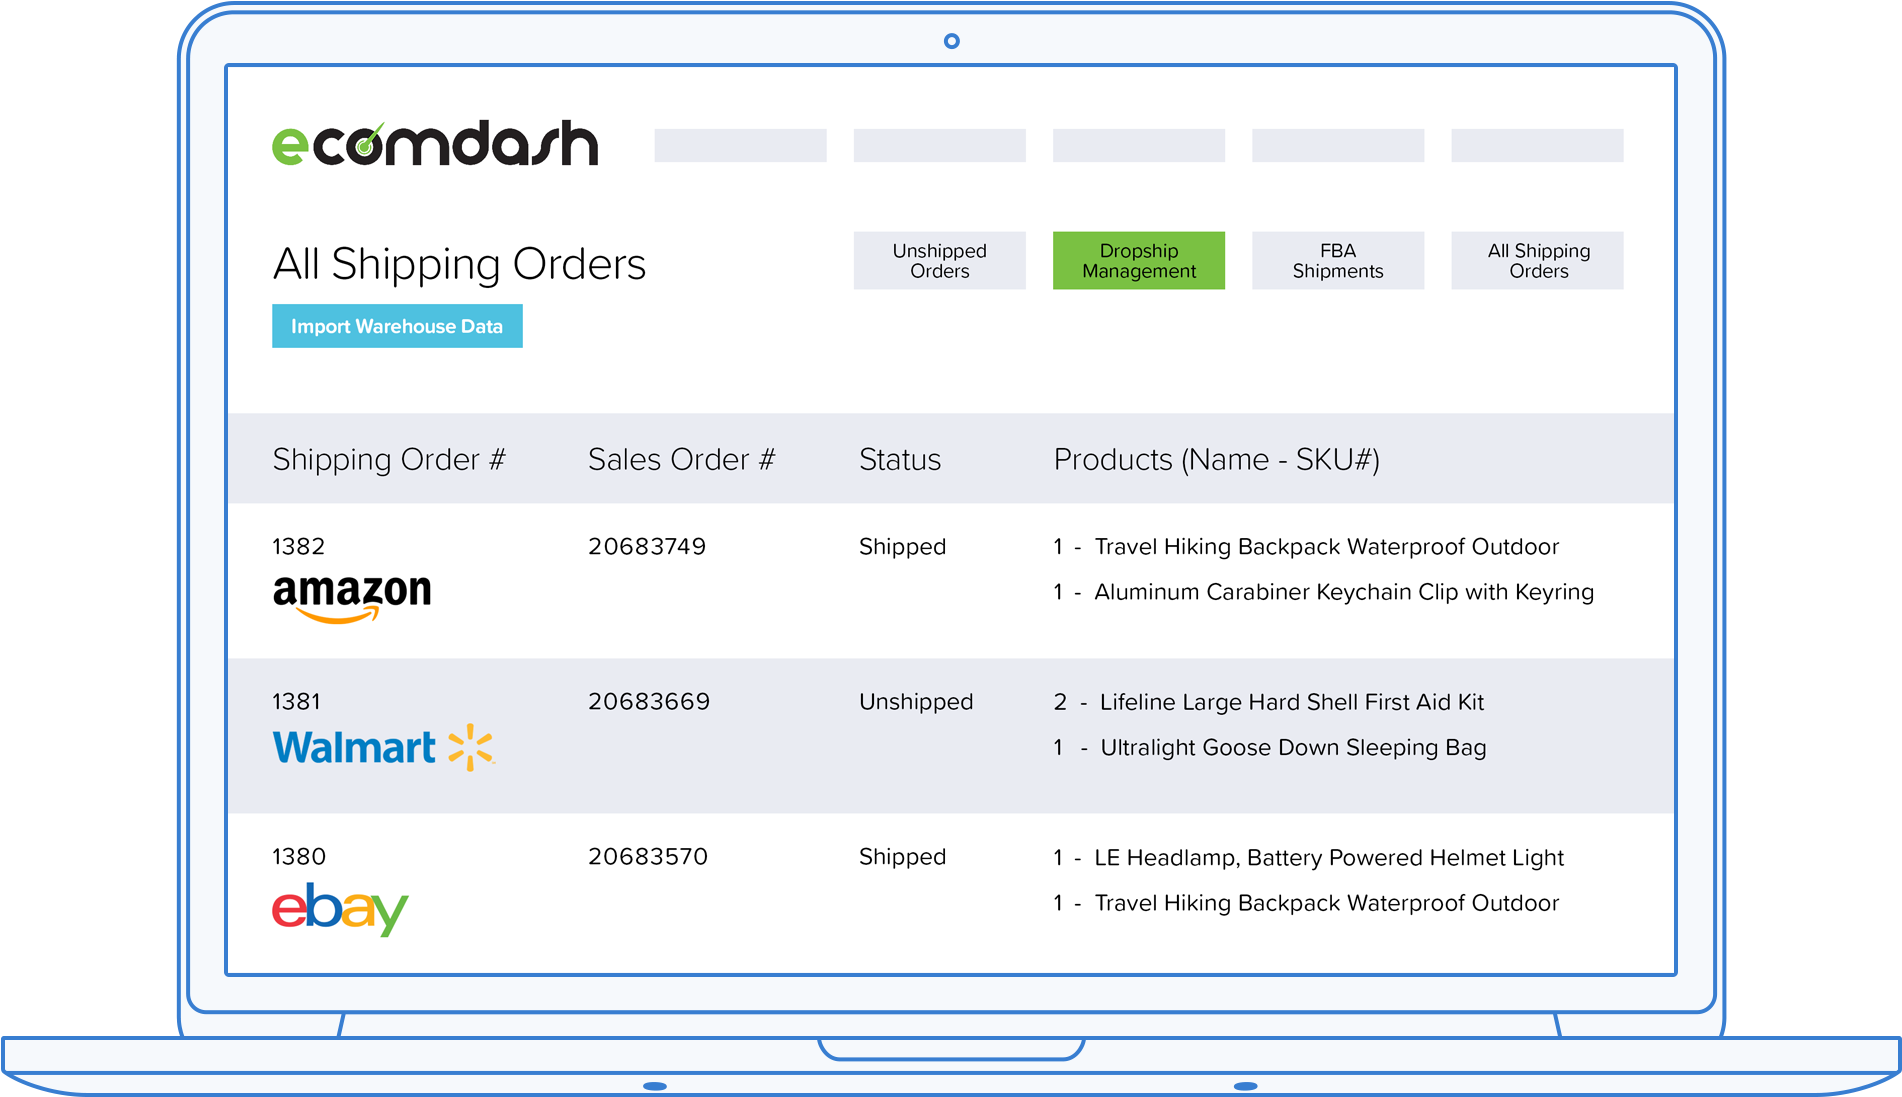 Download Dropshipping Software For Ecommerce Businesses